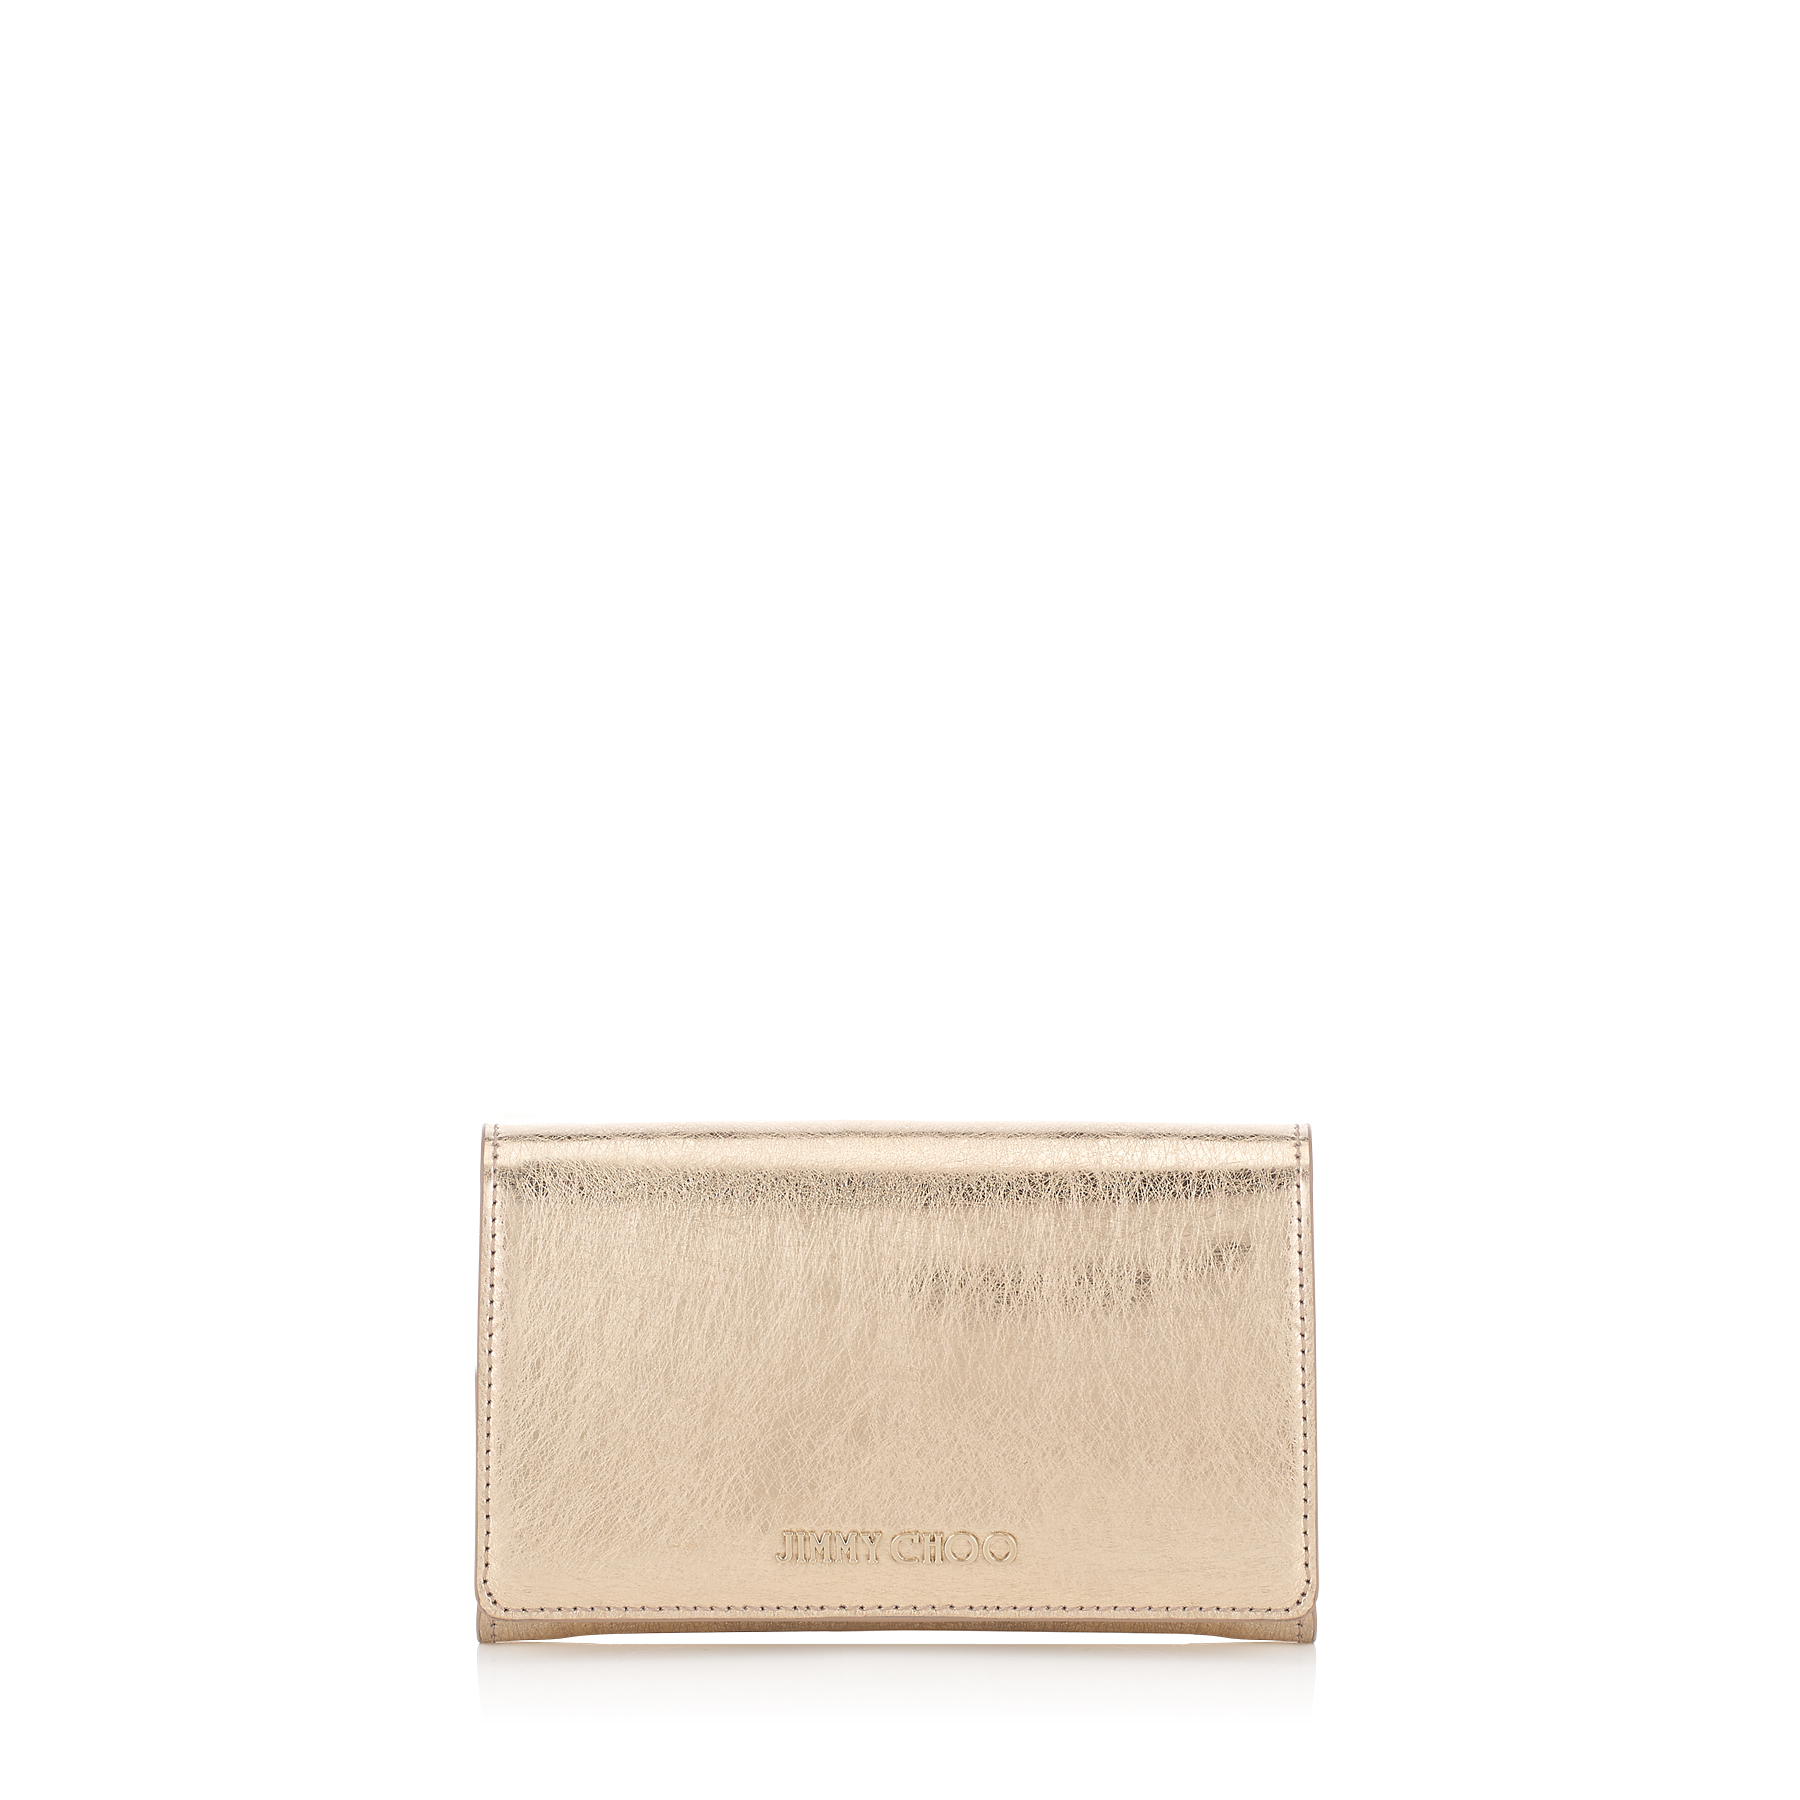 MARLIE Gold Etched Metallic Spazzolato Leather Continental Wallet